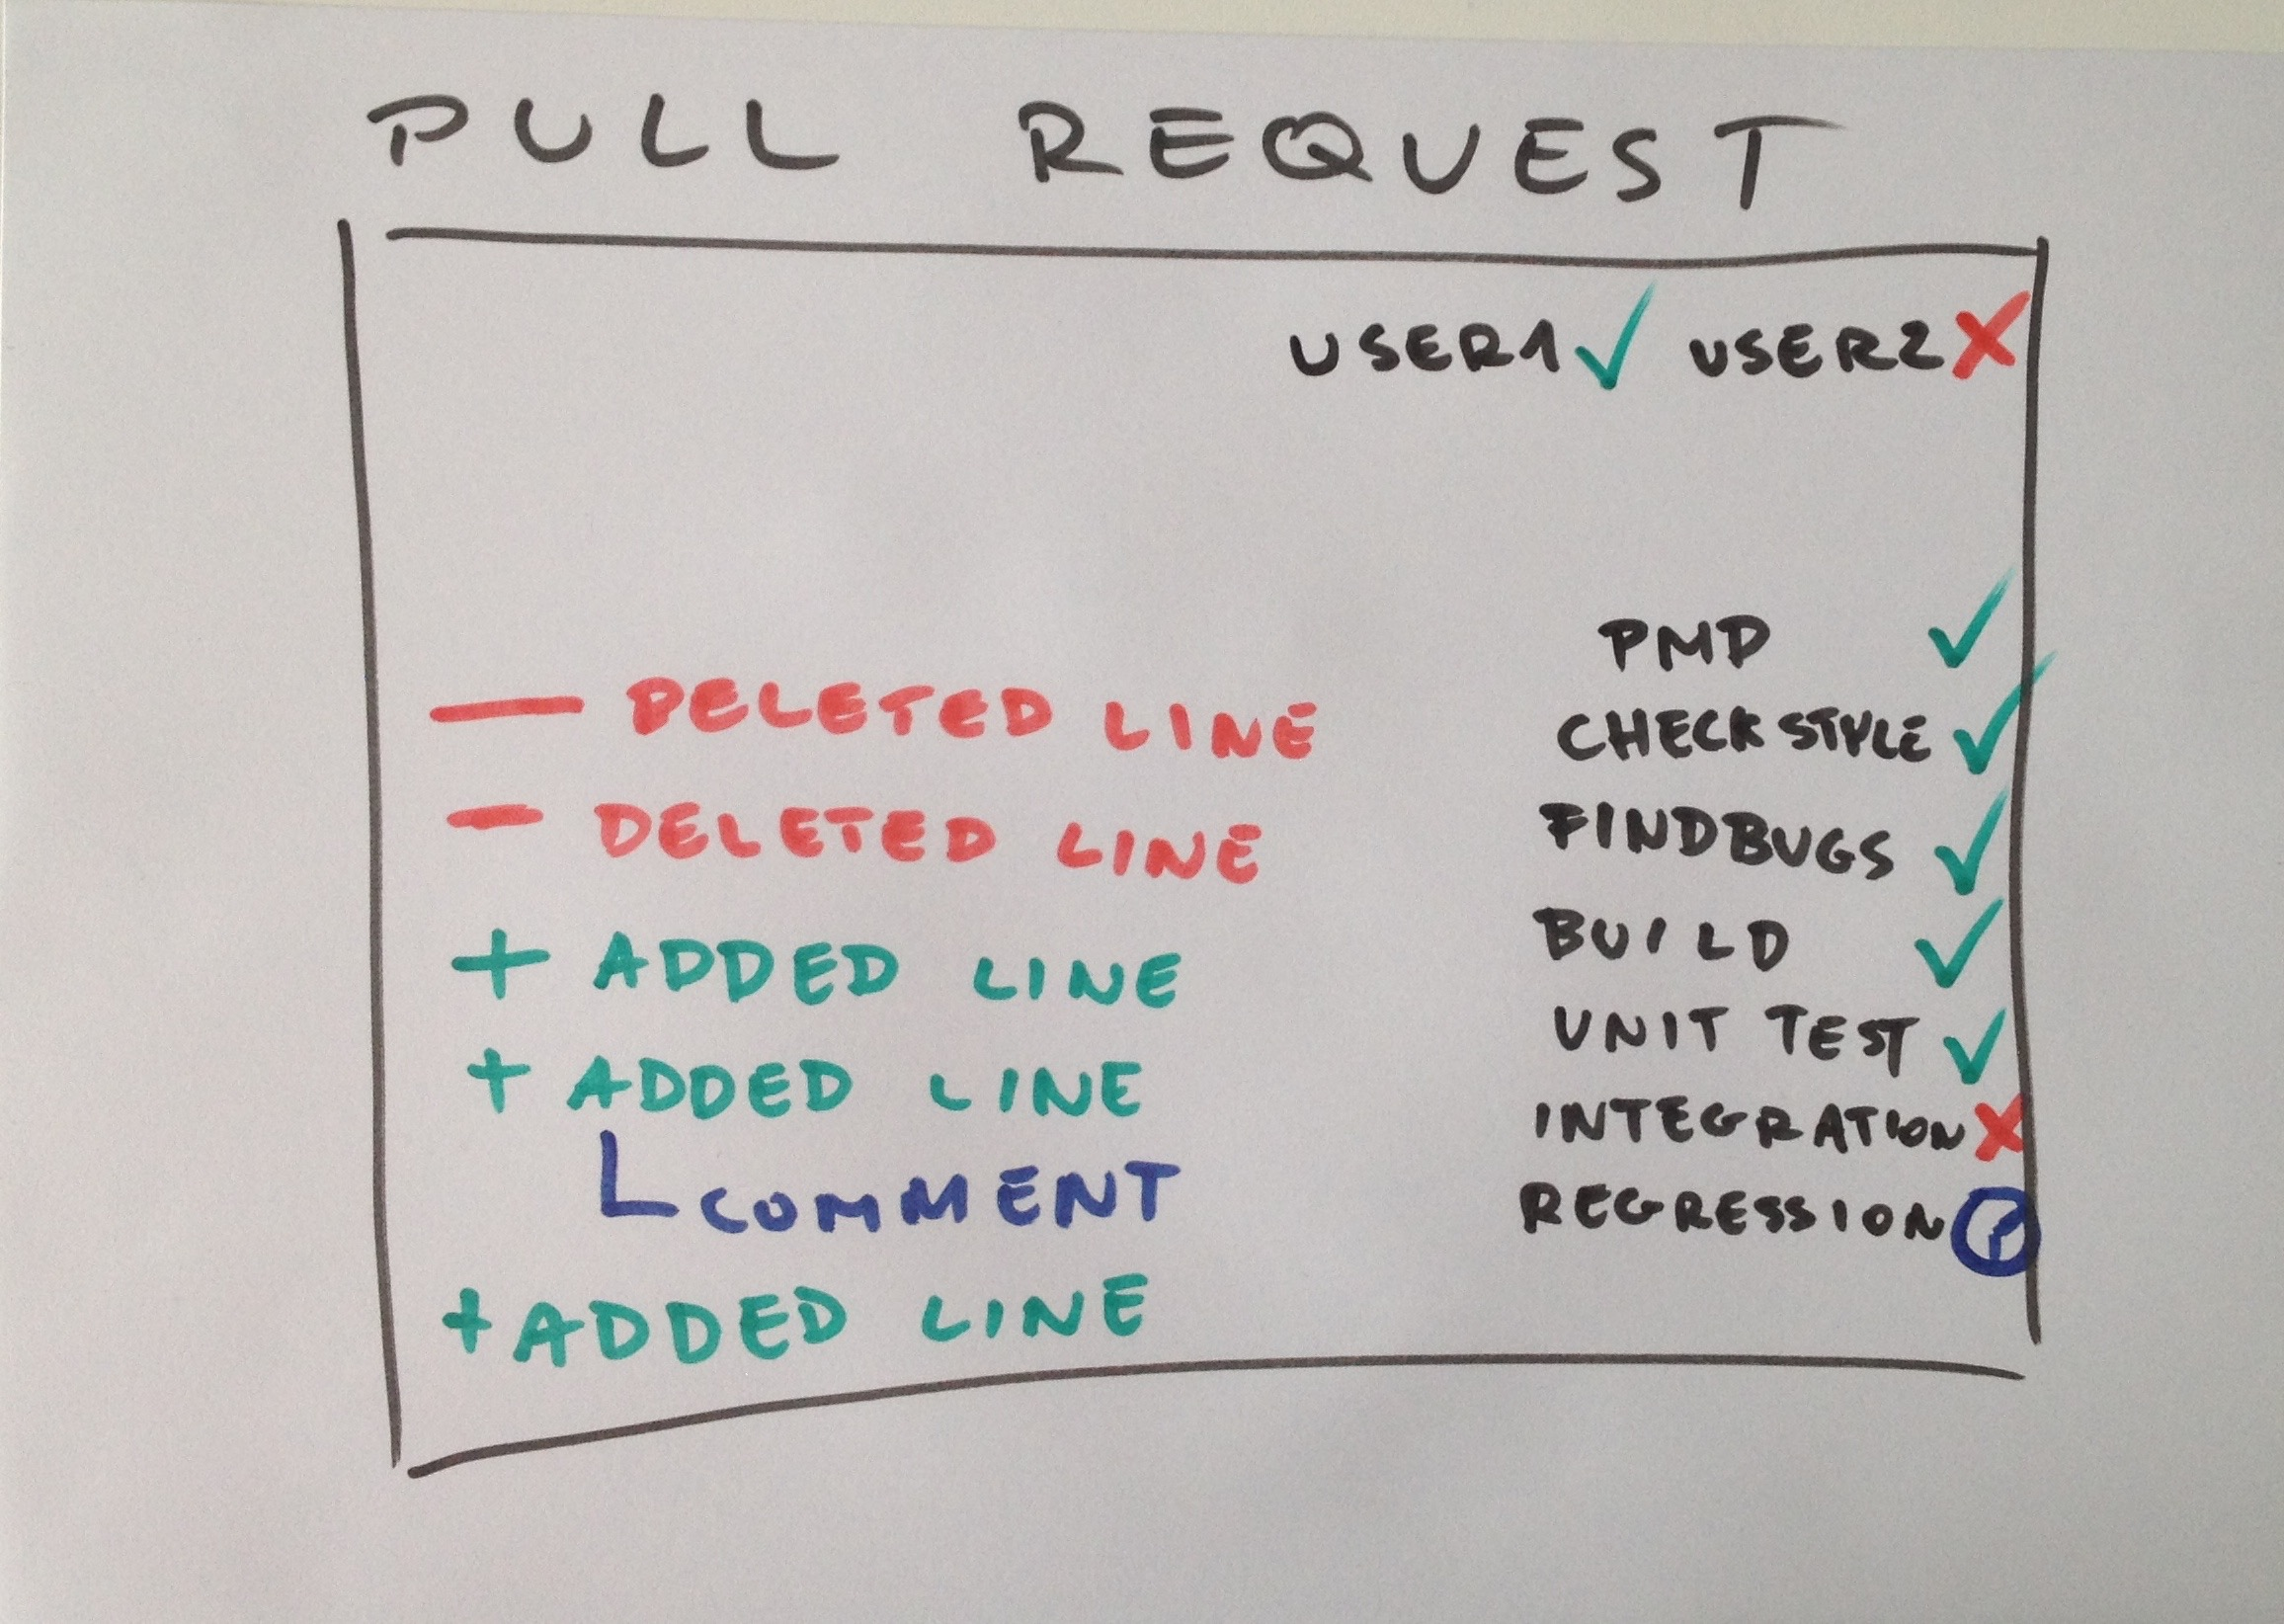 ../../_images/git-pull-request-09.jpg